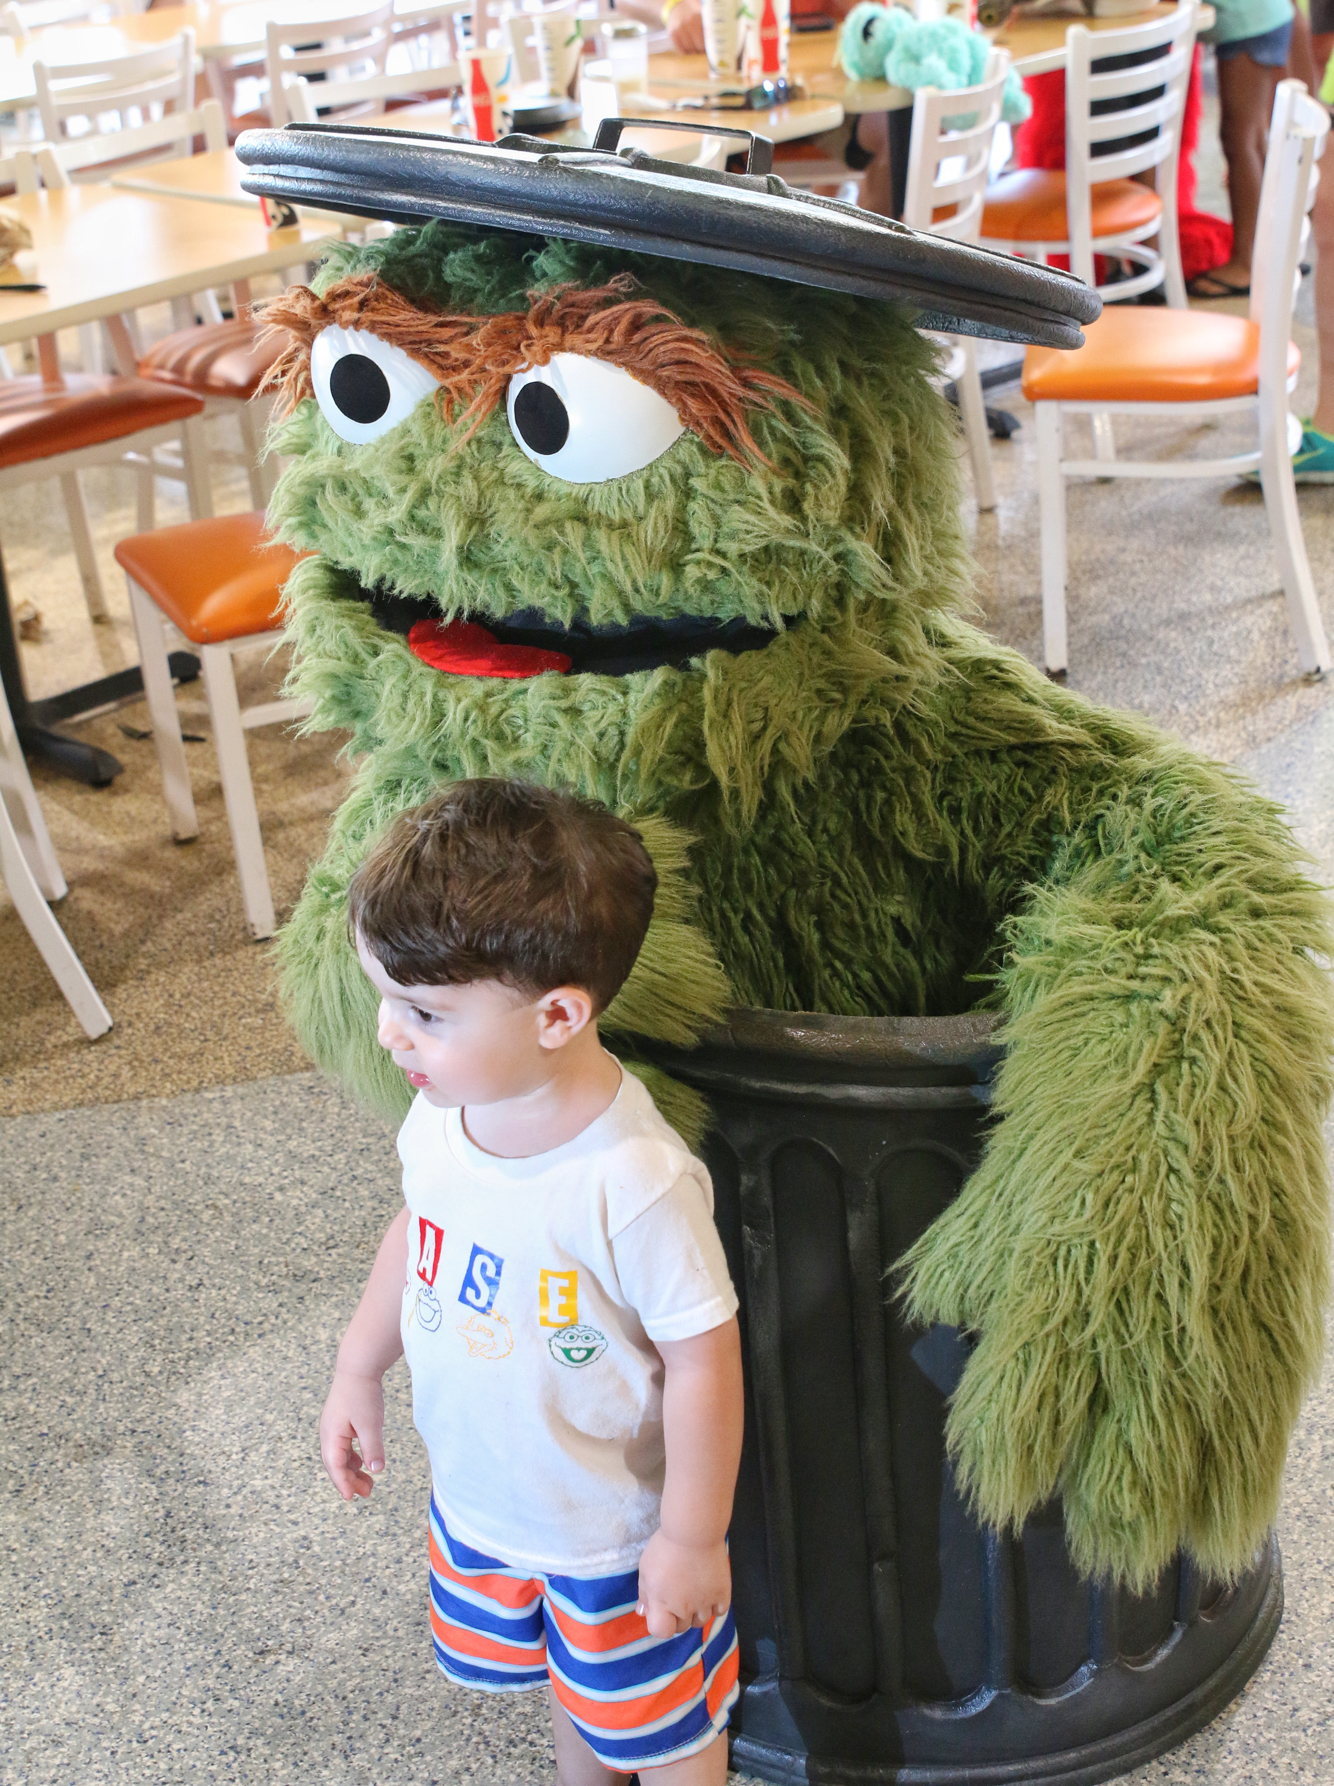 Oscar posing with child at Sesame Street dinner